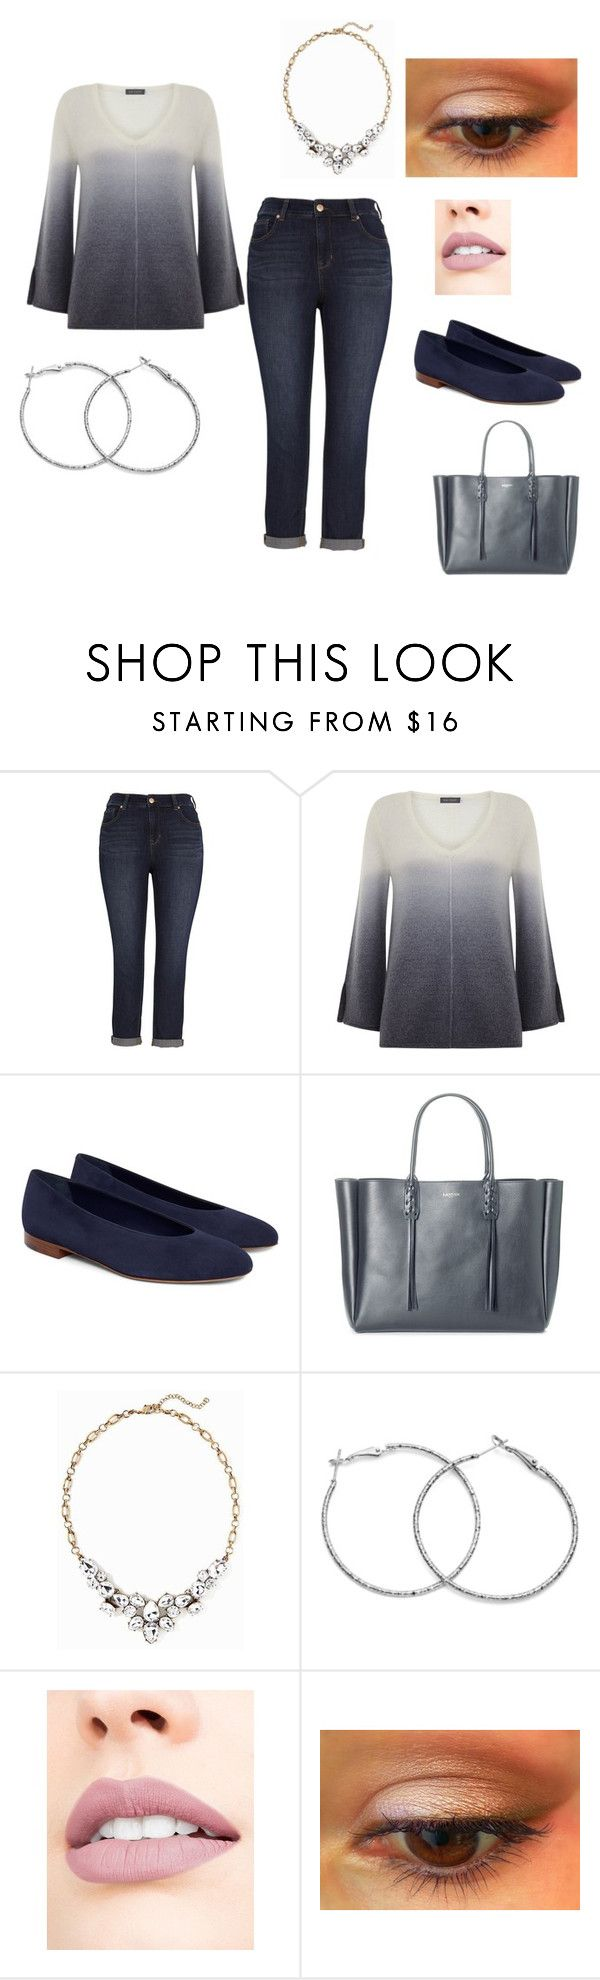 """""""Casual"""" by jen-eye-dig on Polyvore featuring Melissa McCarthy Seven7, Mint Velvet, Lanvin, Old Navy and Jouer"""